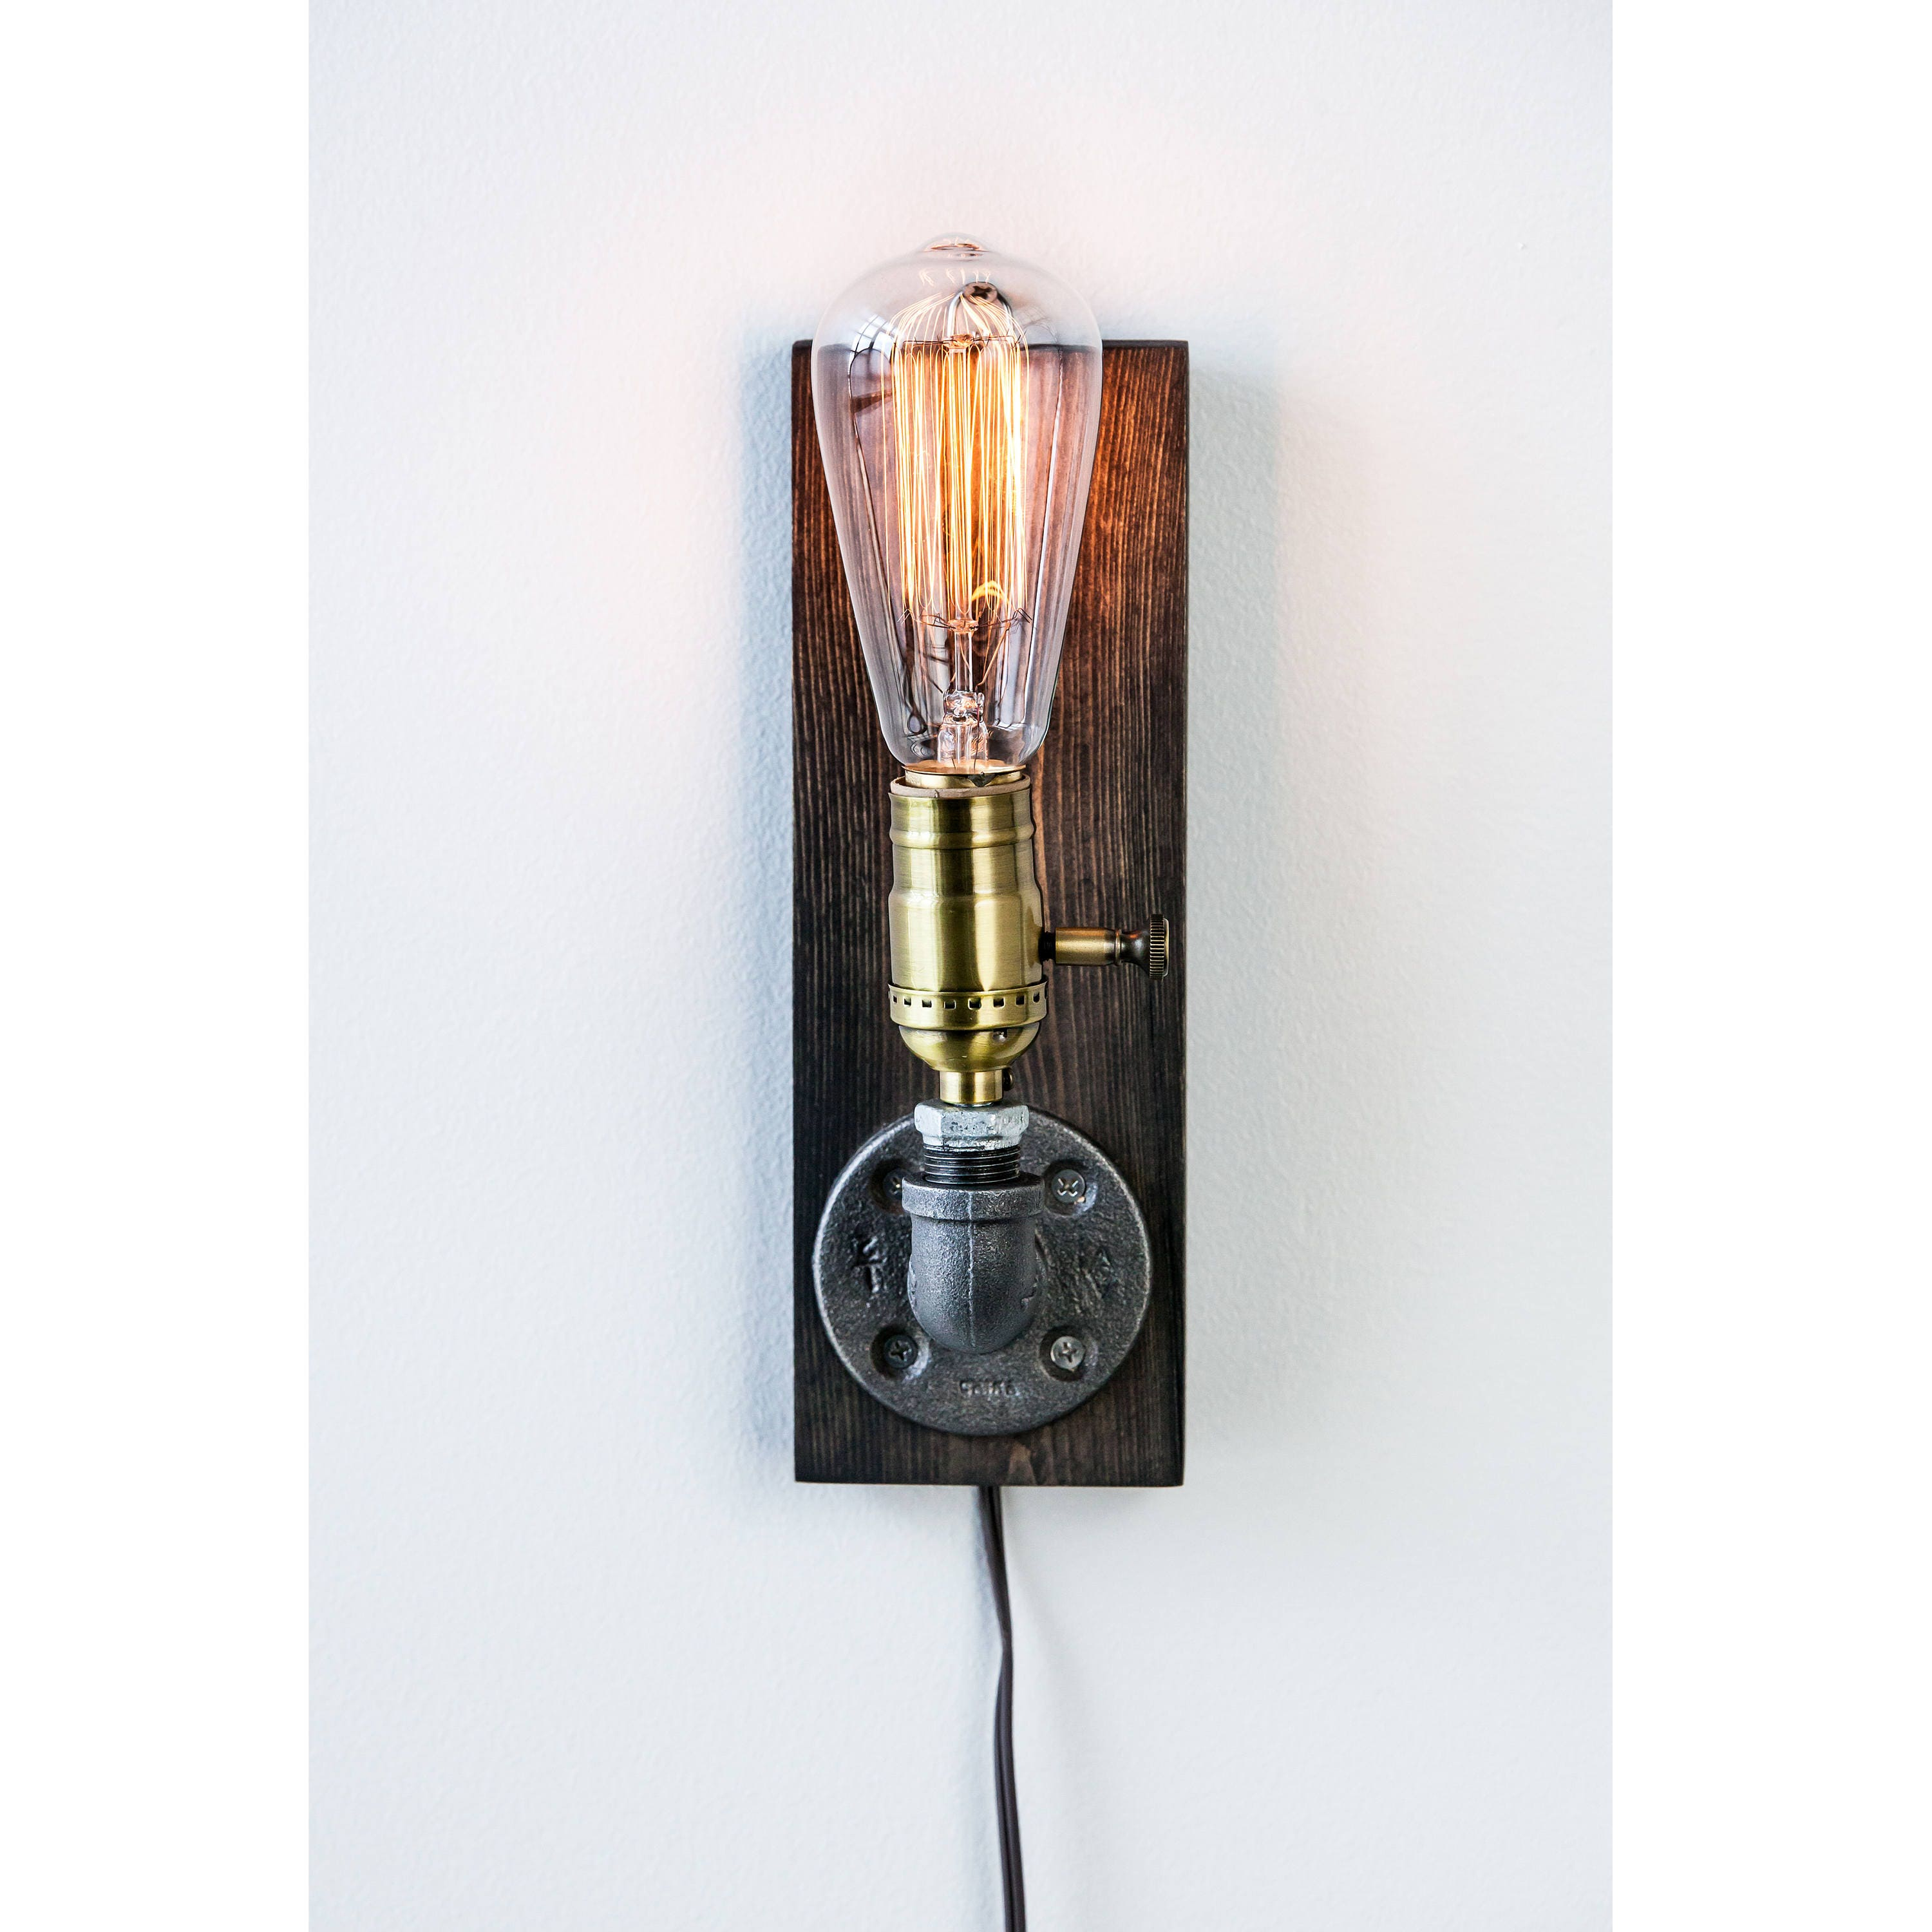 fullxfull lights sconce black il bedroom listing cffy lamp farmhouse industrial copper lighting bathroom wall vanity